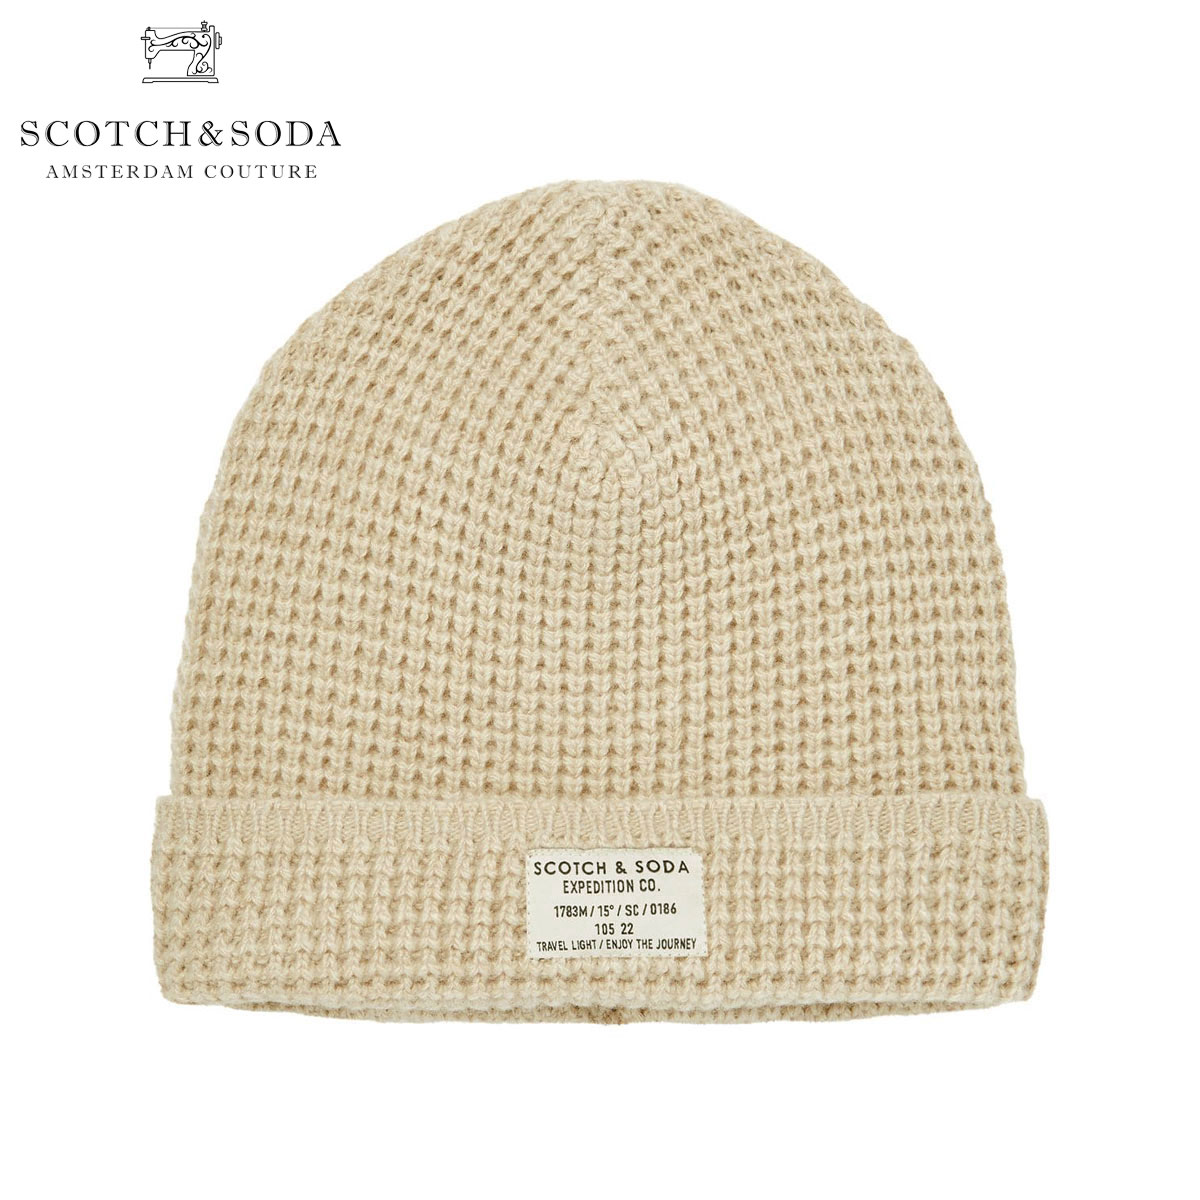 12197d4ac Scotch Whiskey and soda SCOTCH & SODA regular store beanie knit hat hat  CLASSIC BEANIE IN STRUCTURED KNIT 145682 0831 68800 KIT